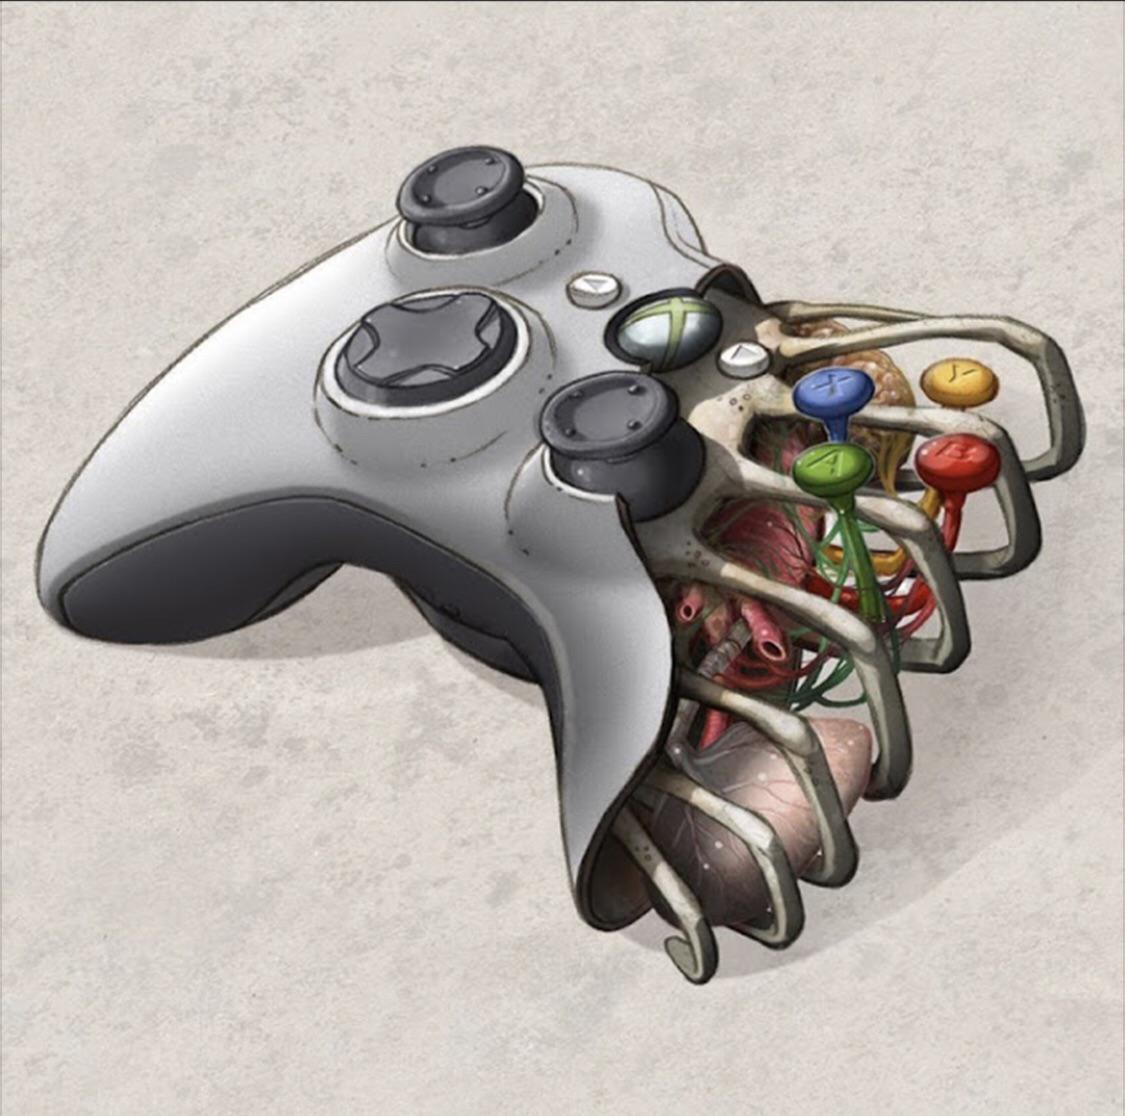 This picture was used in an ad on FB, but I thought it would make for a dope tattoo for hardcore gamers out there.